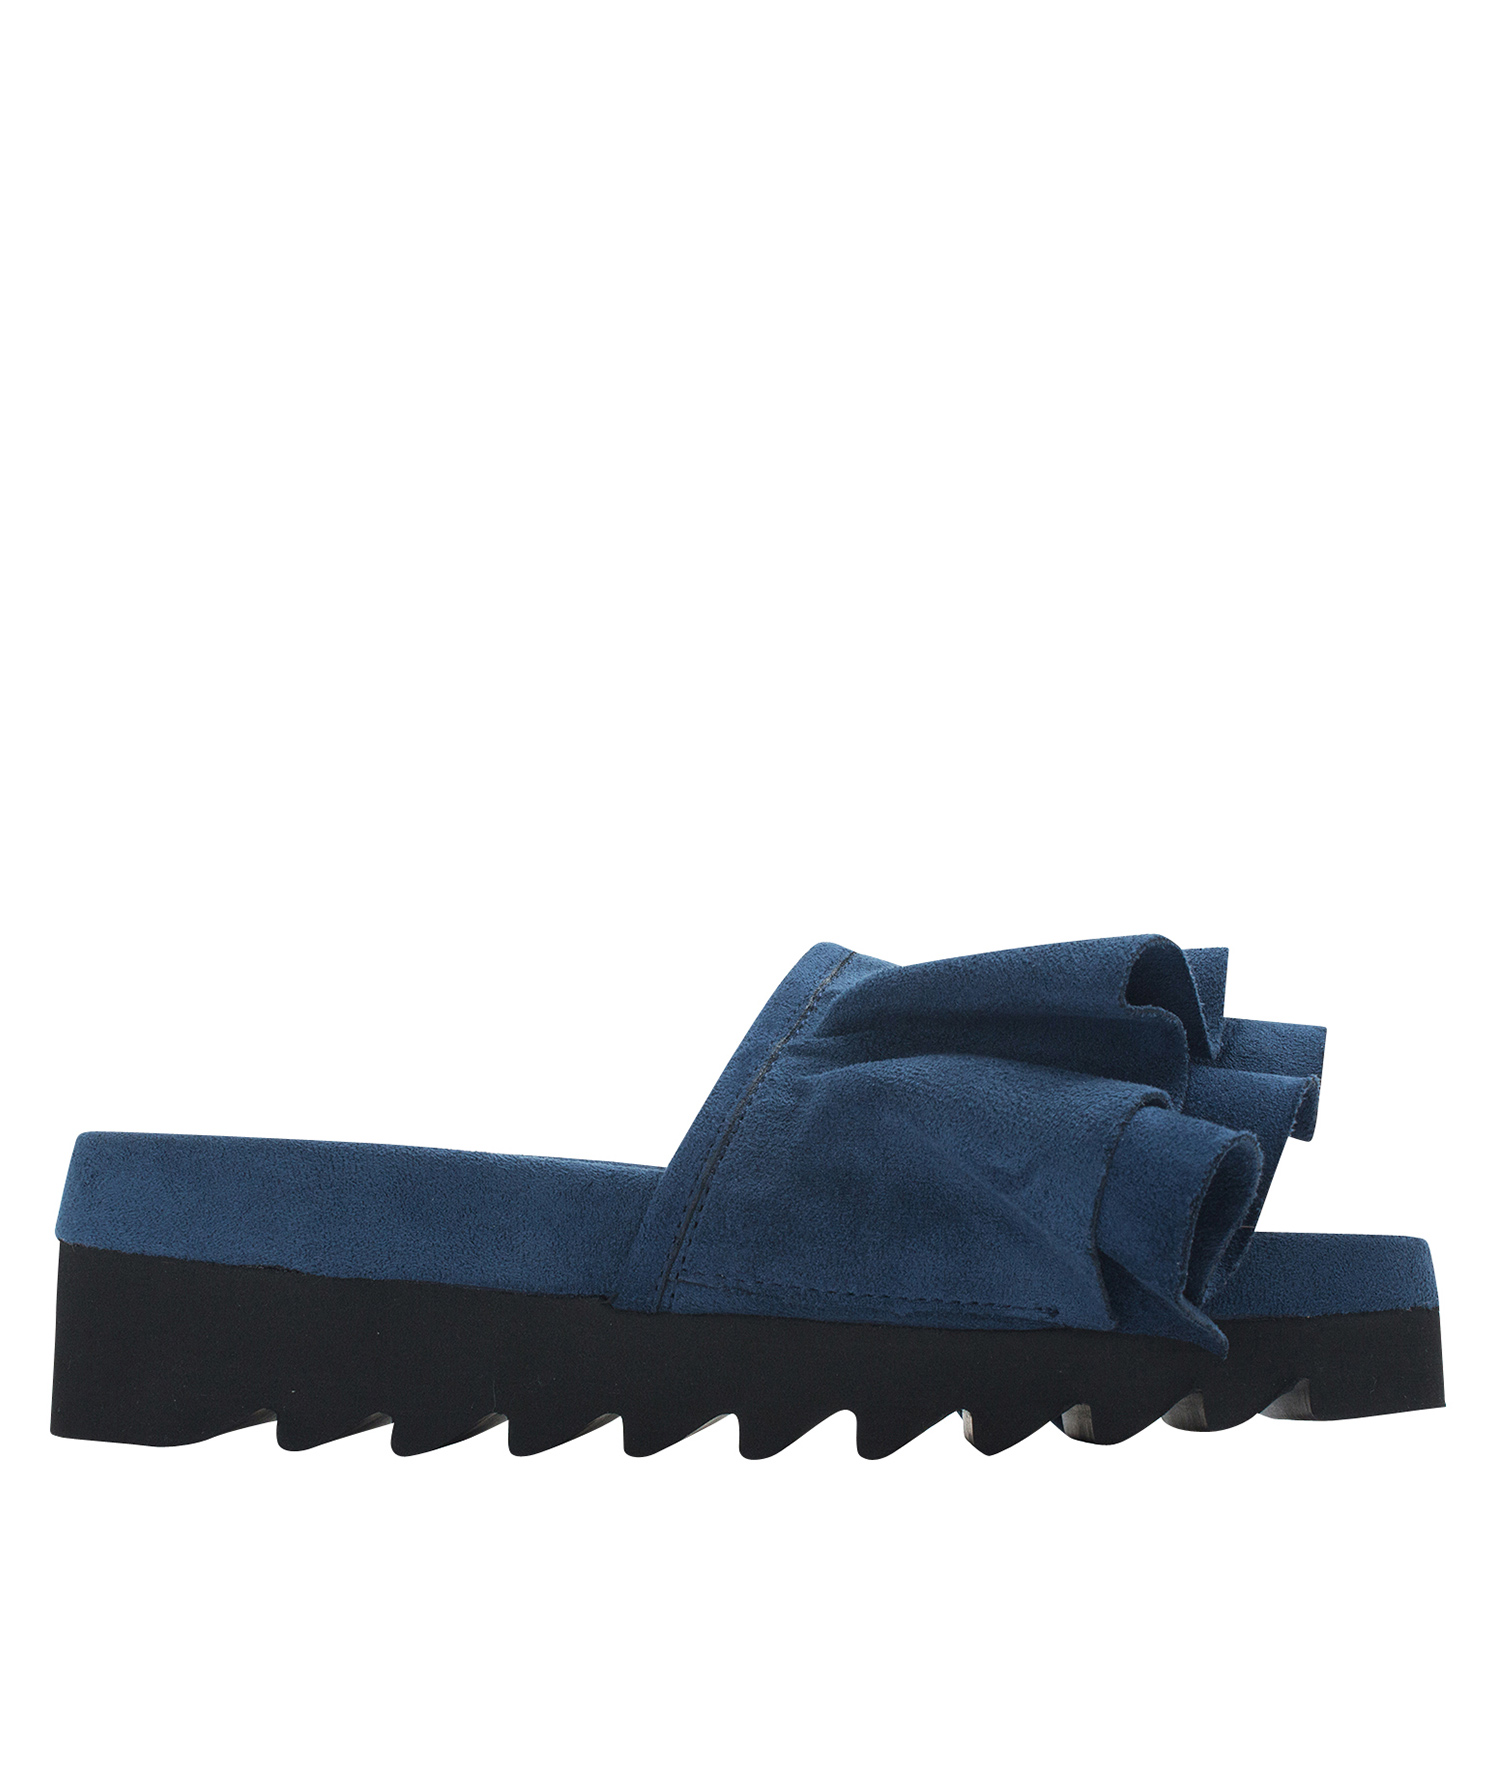 Annakastle Womens Faux Suede Ruffled Sandals Navy